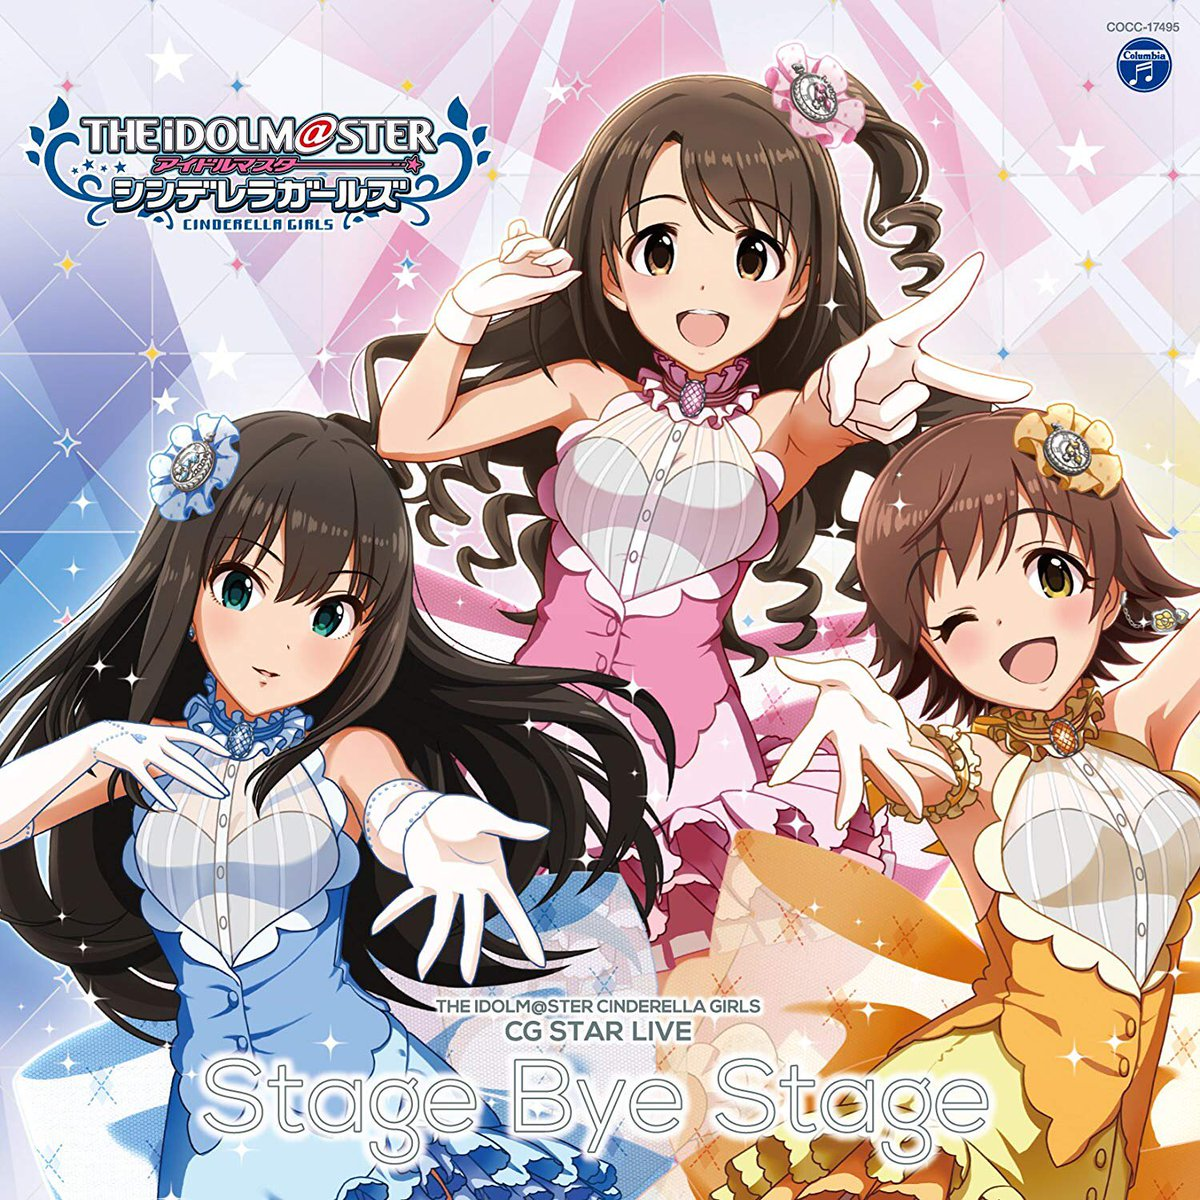 test ツイッターメディア - #nowplaying #NPbot Stage bye Stage - 島村卯月 (大橋彩香), 渋谷凛 (福原綾香), 本田未央 (原紗友里) - THE IDOLM@STER CINDERELLA GIRLS CG STAR LIVE Stage Bye Stage https://t.co/2RPk5mPKss